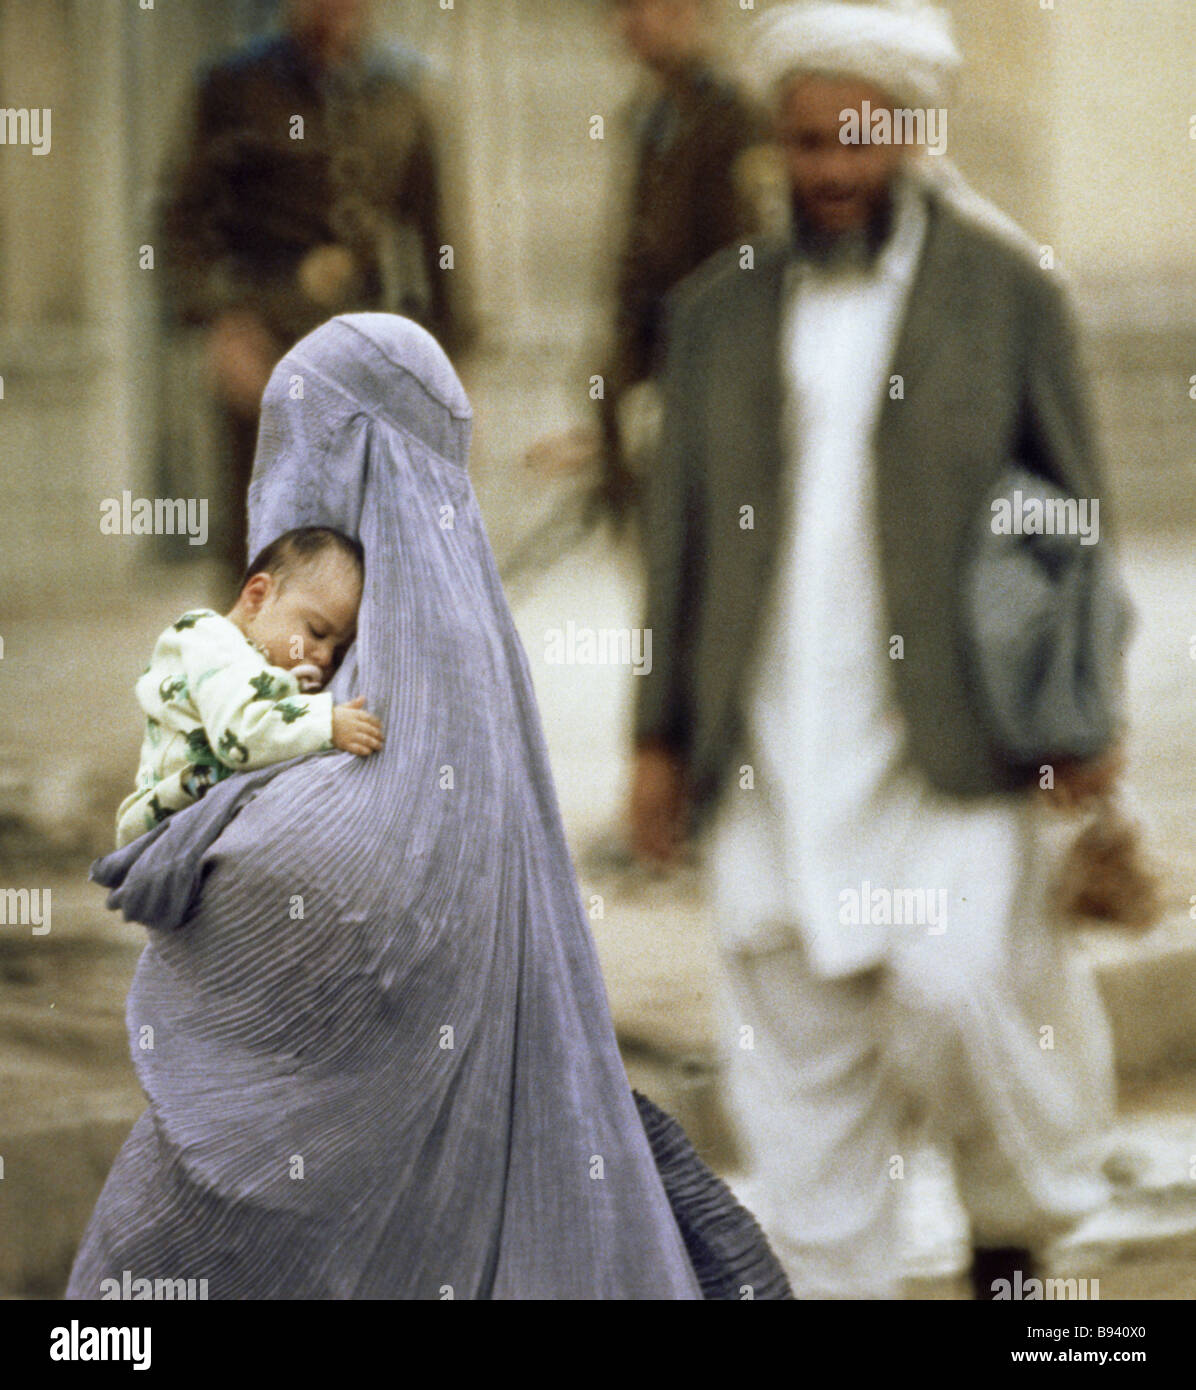 A Kabul woman with a baby in her arms - Stock Image